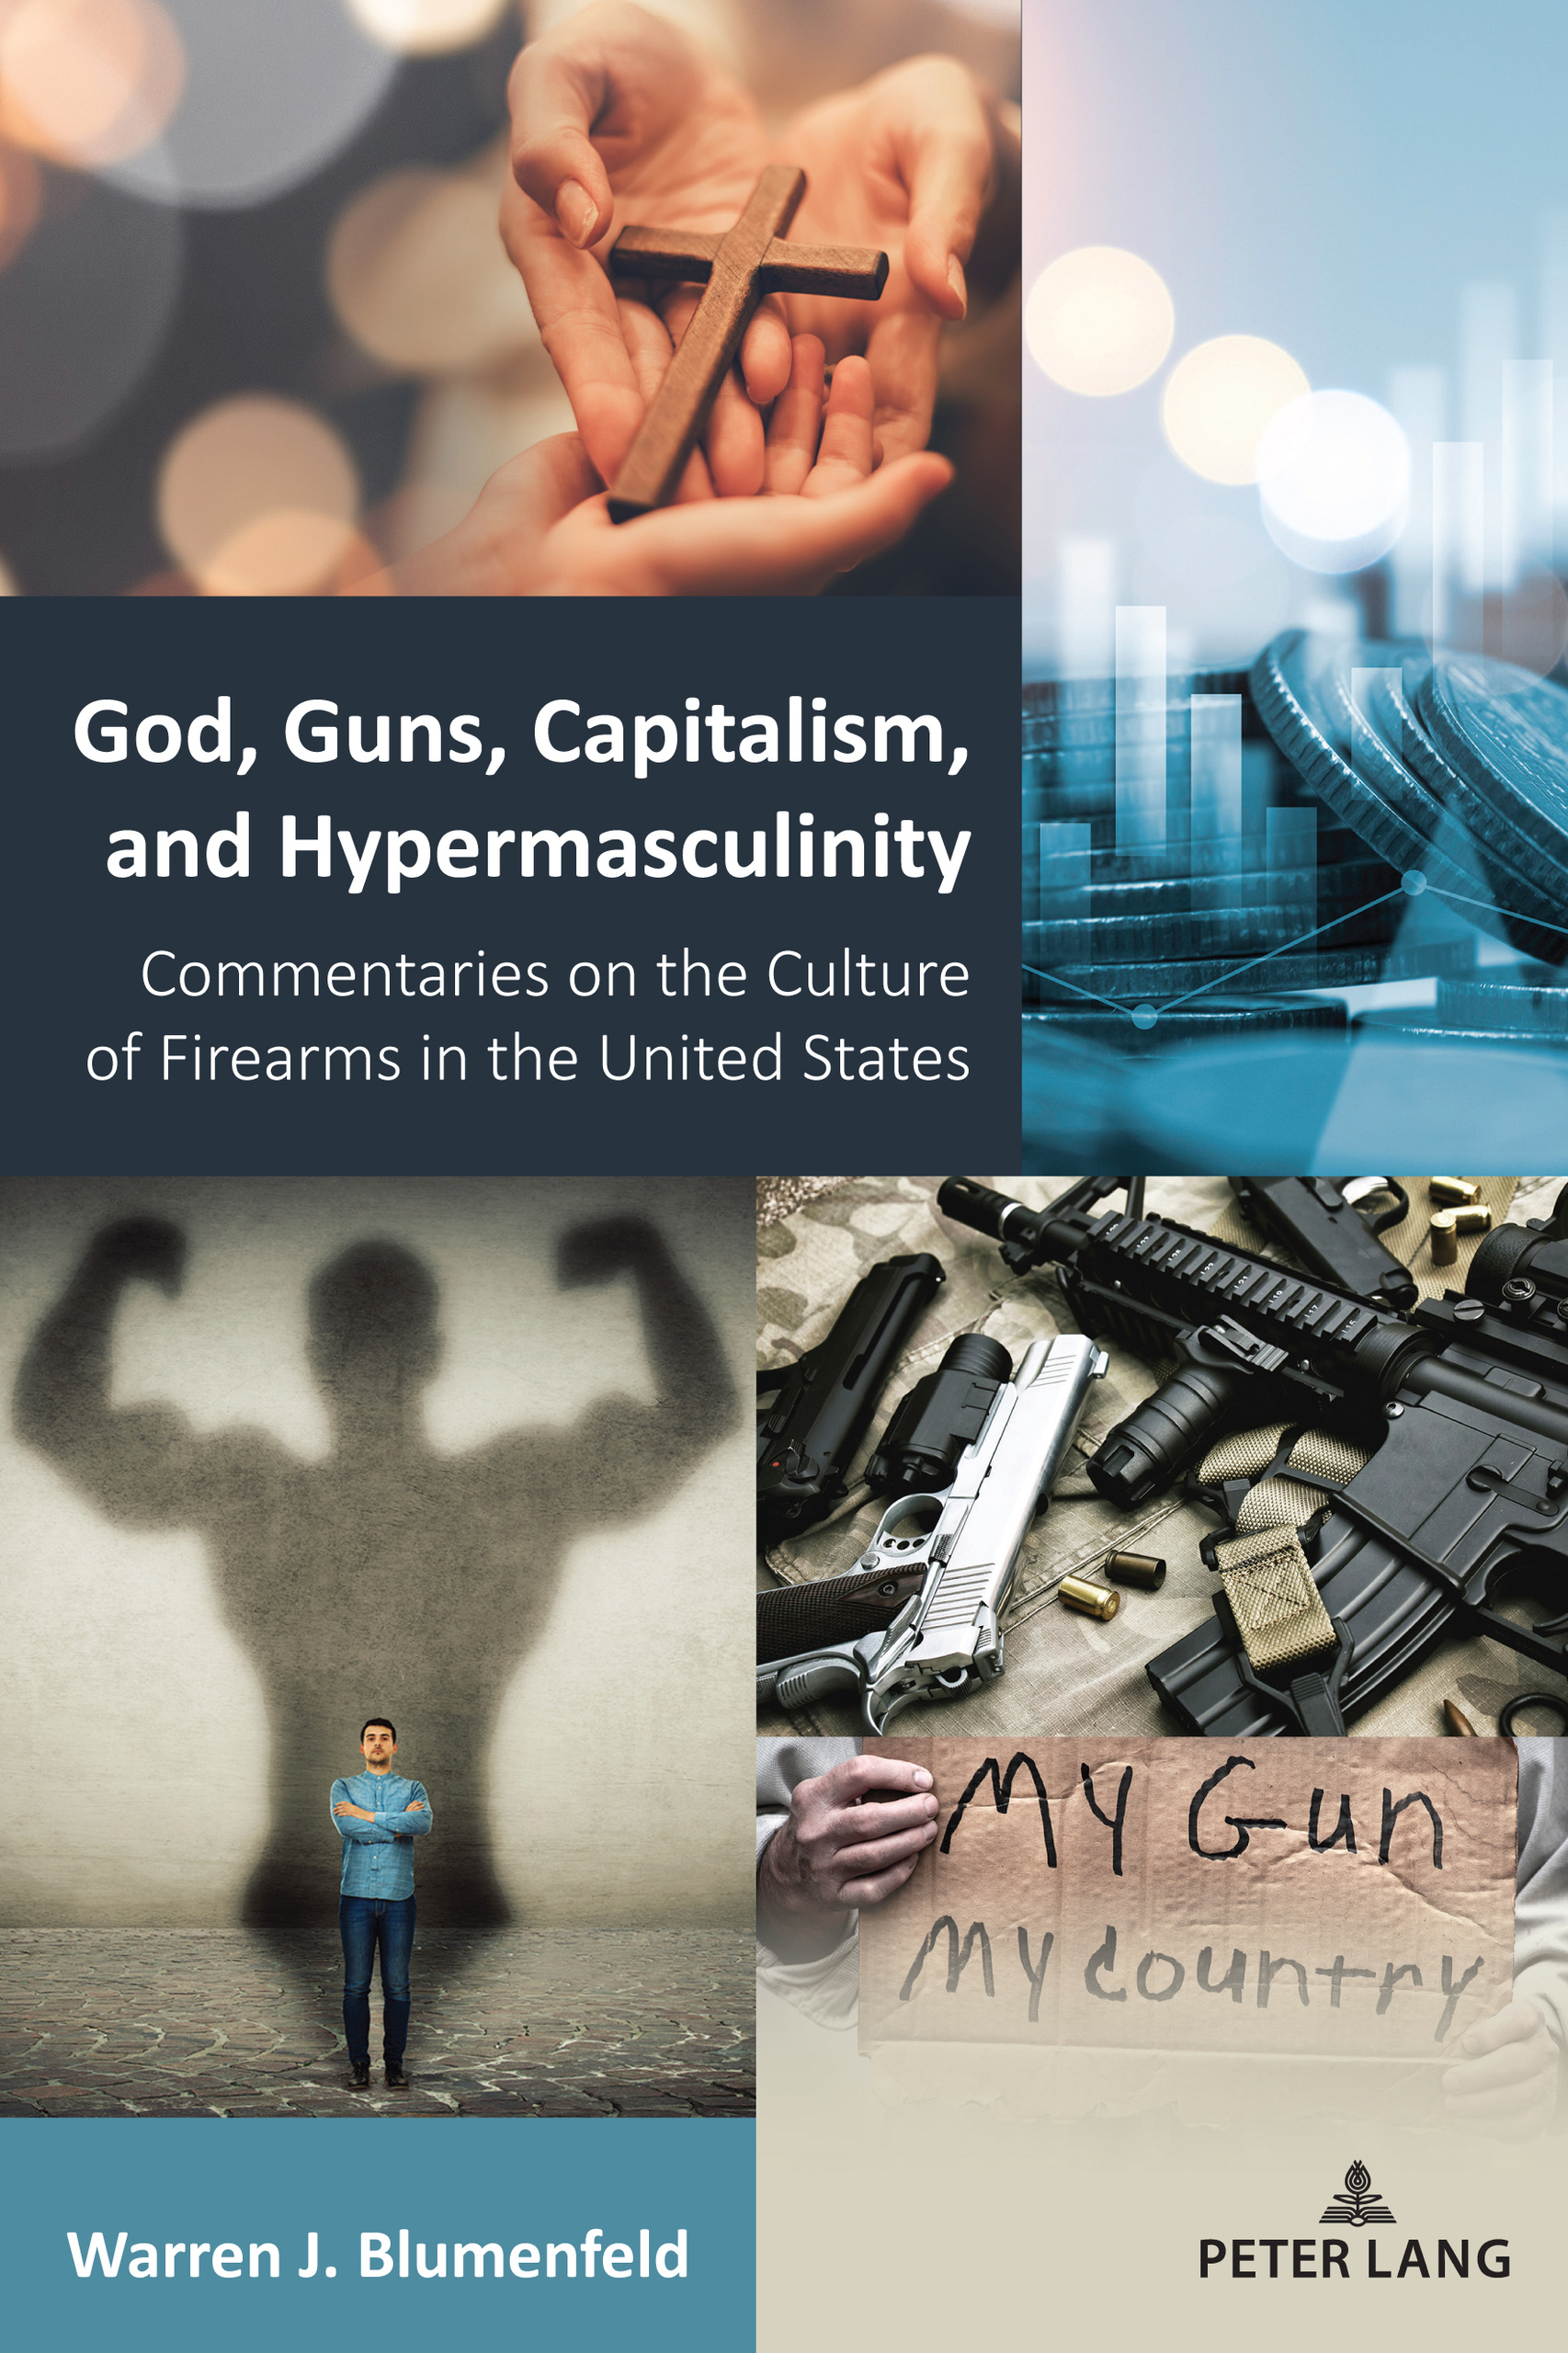 Title: God, Guns, Capitalism, and Hypermasculinity